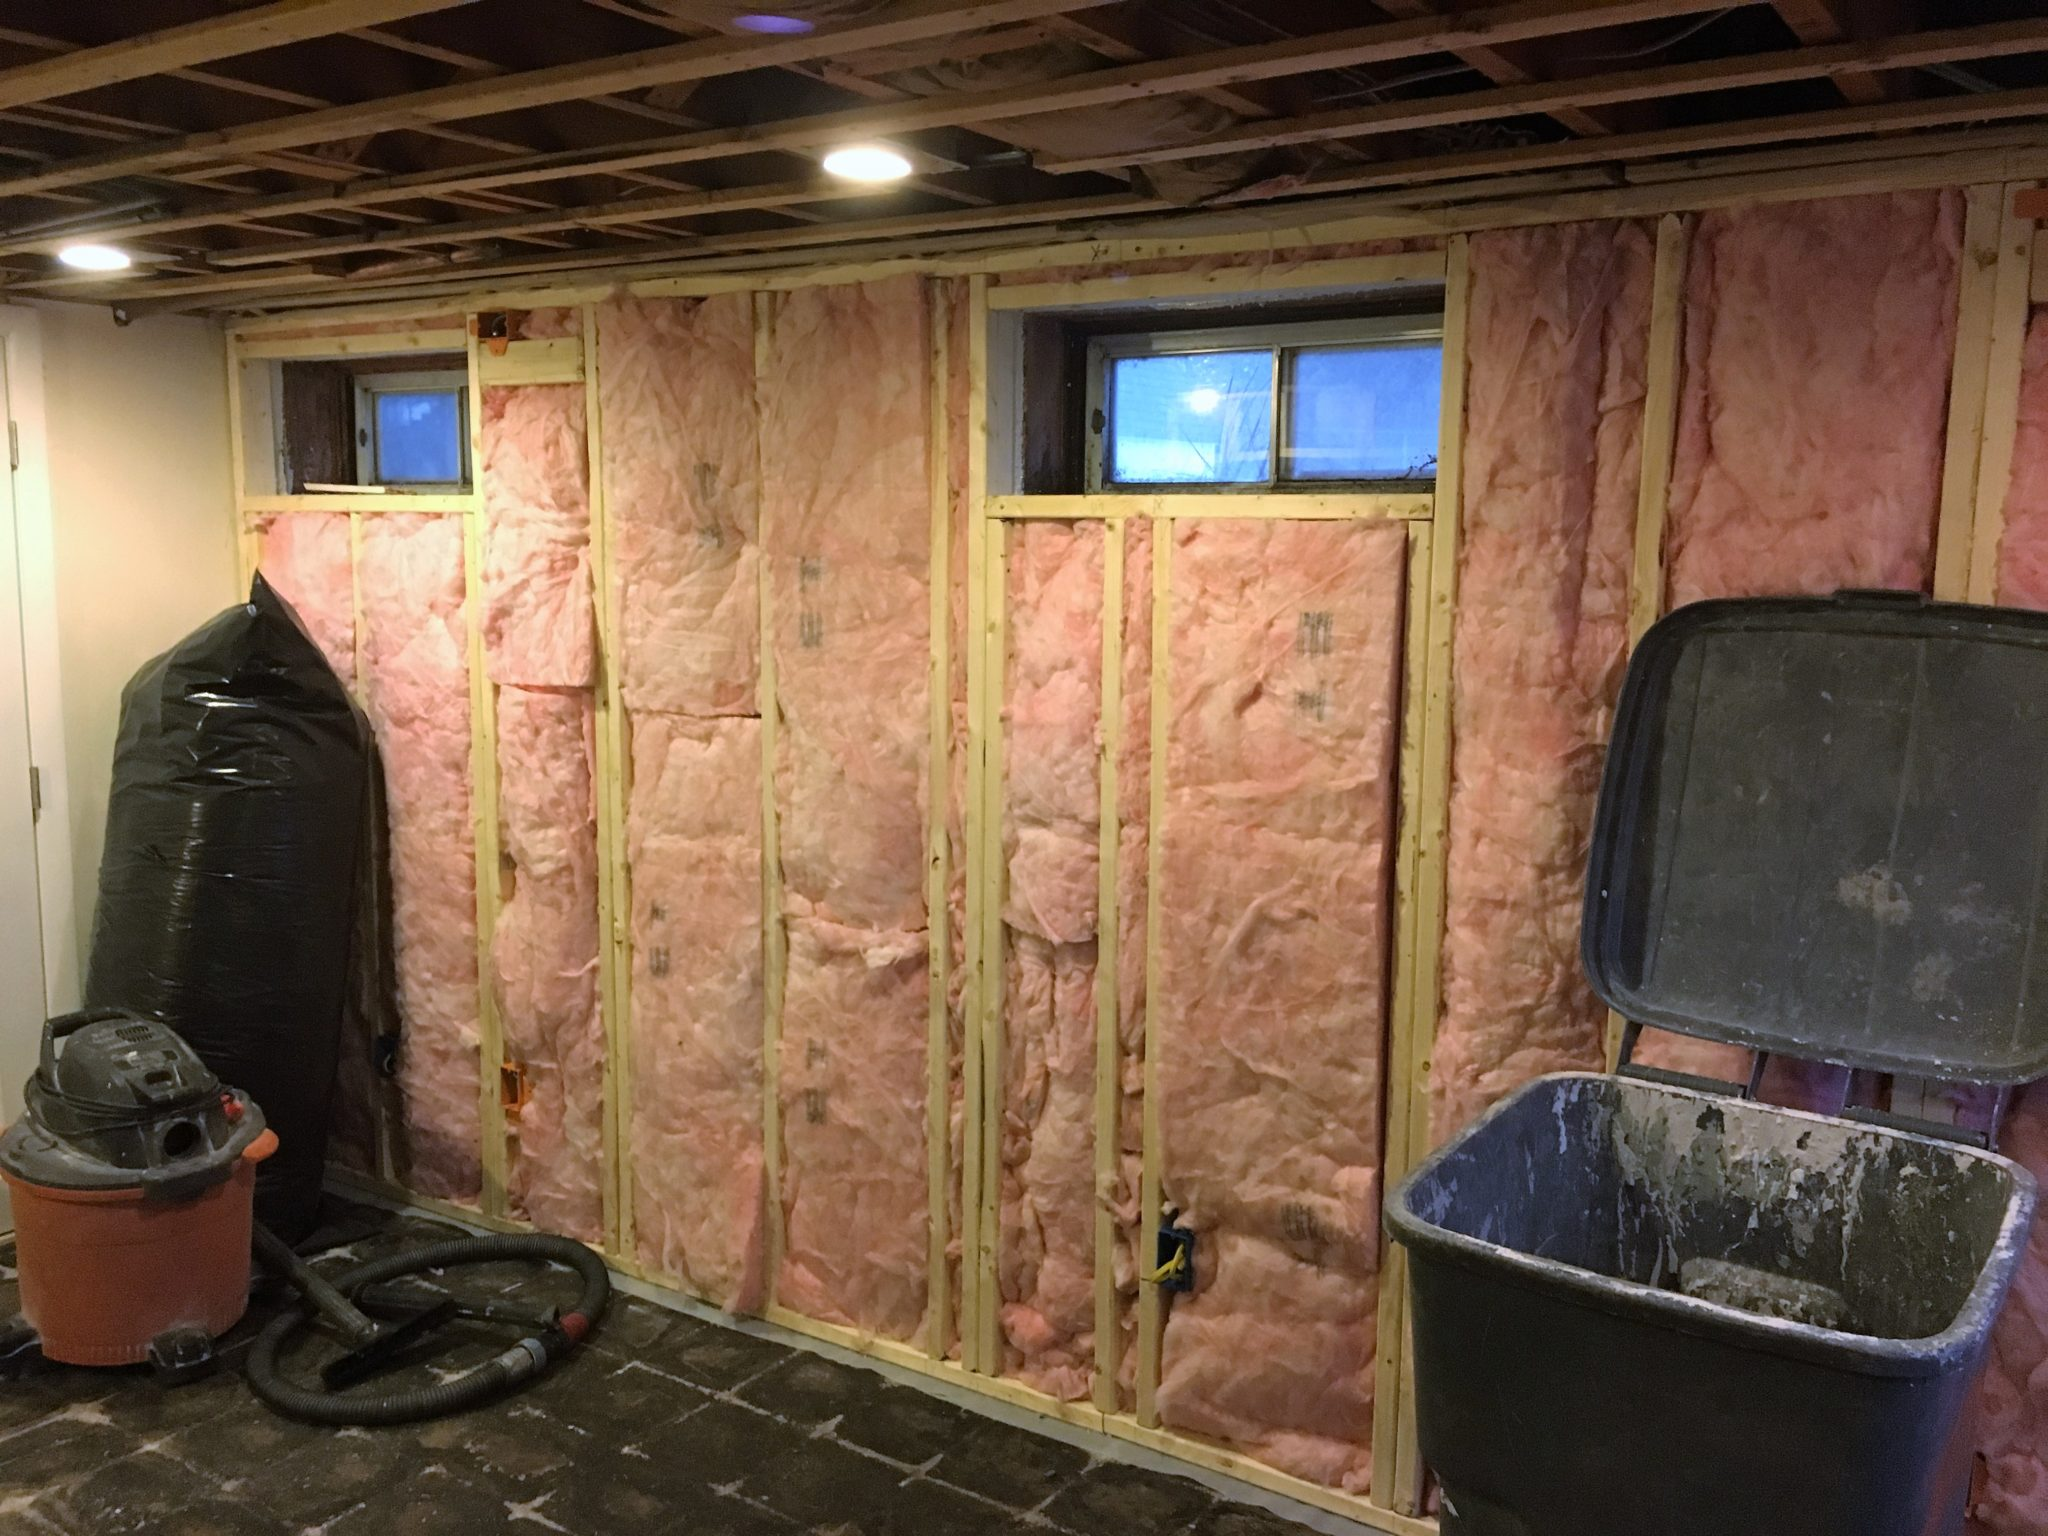 South Hadley Ma Basement Bonus Room Home And Hearth Remodeling Wiring Insulation The New Walls Have Been Filled With R 13 Combined 10 Foam Board This Gives Wall A Better Than 23 Rating Without Any